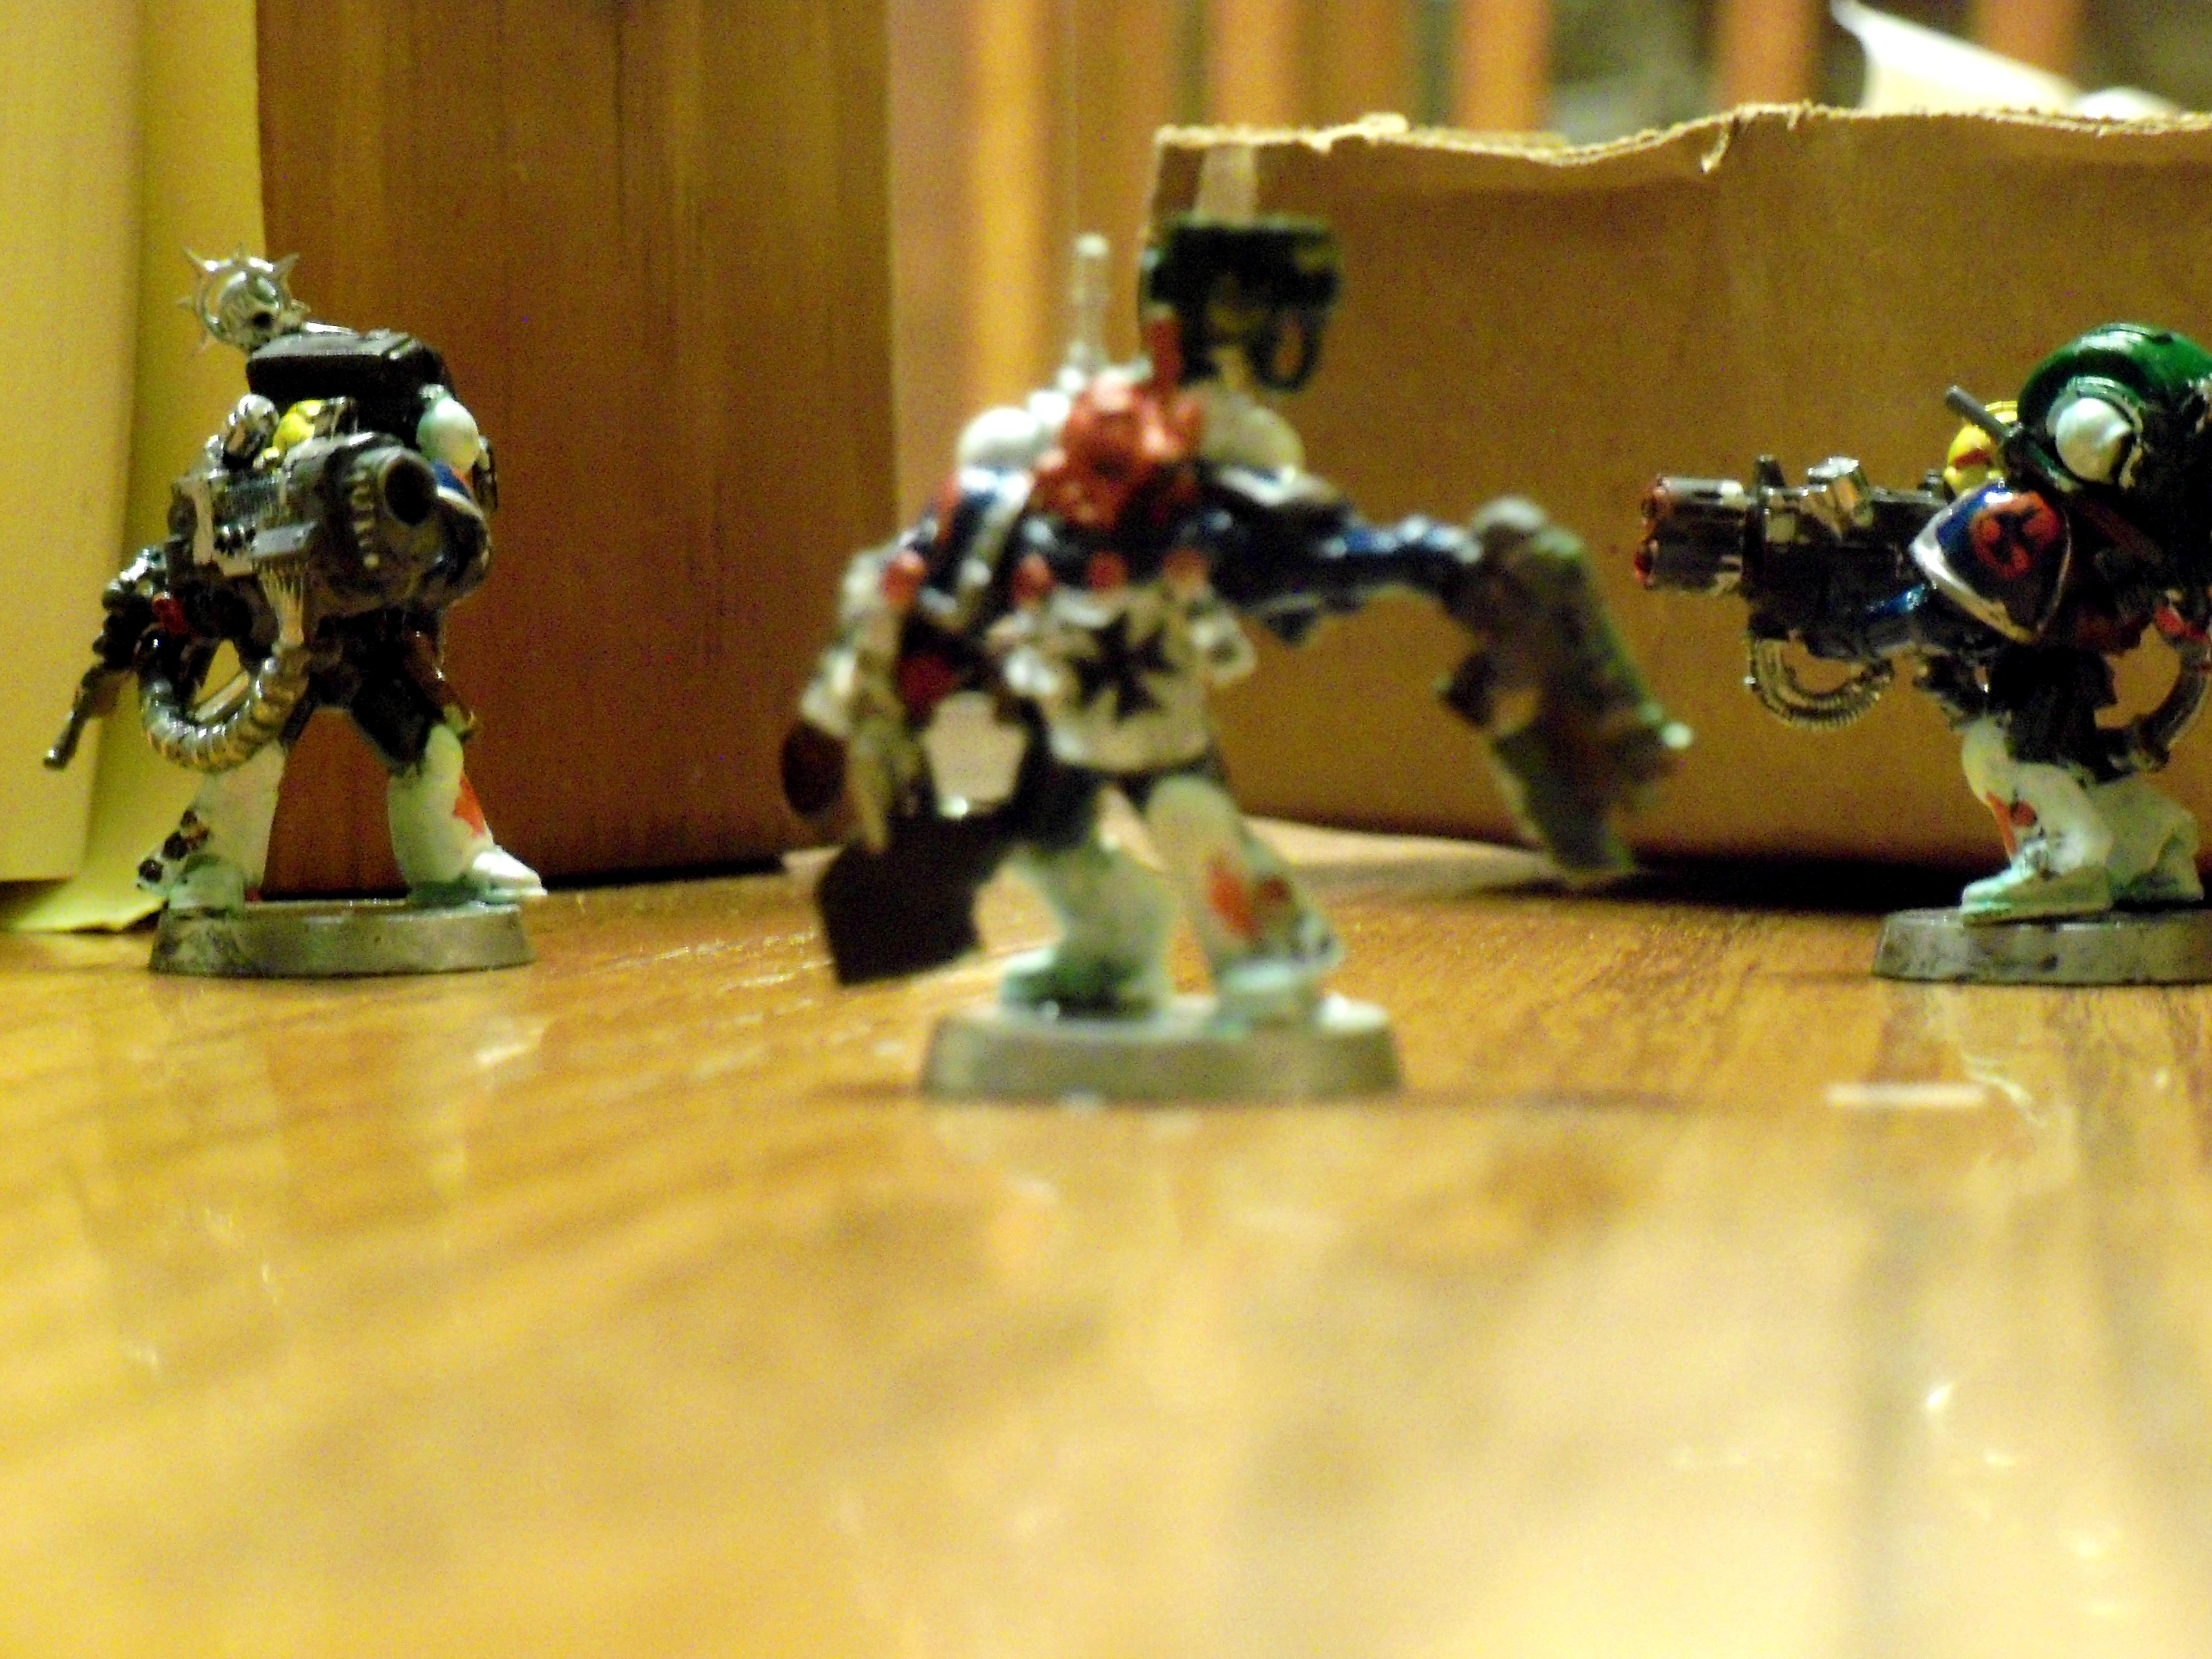 Chainsaw Bolter, Devistator, Gow, Lancer, Lascannon, Mm, Pc, Space, Space Marines